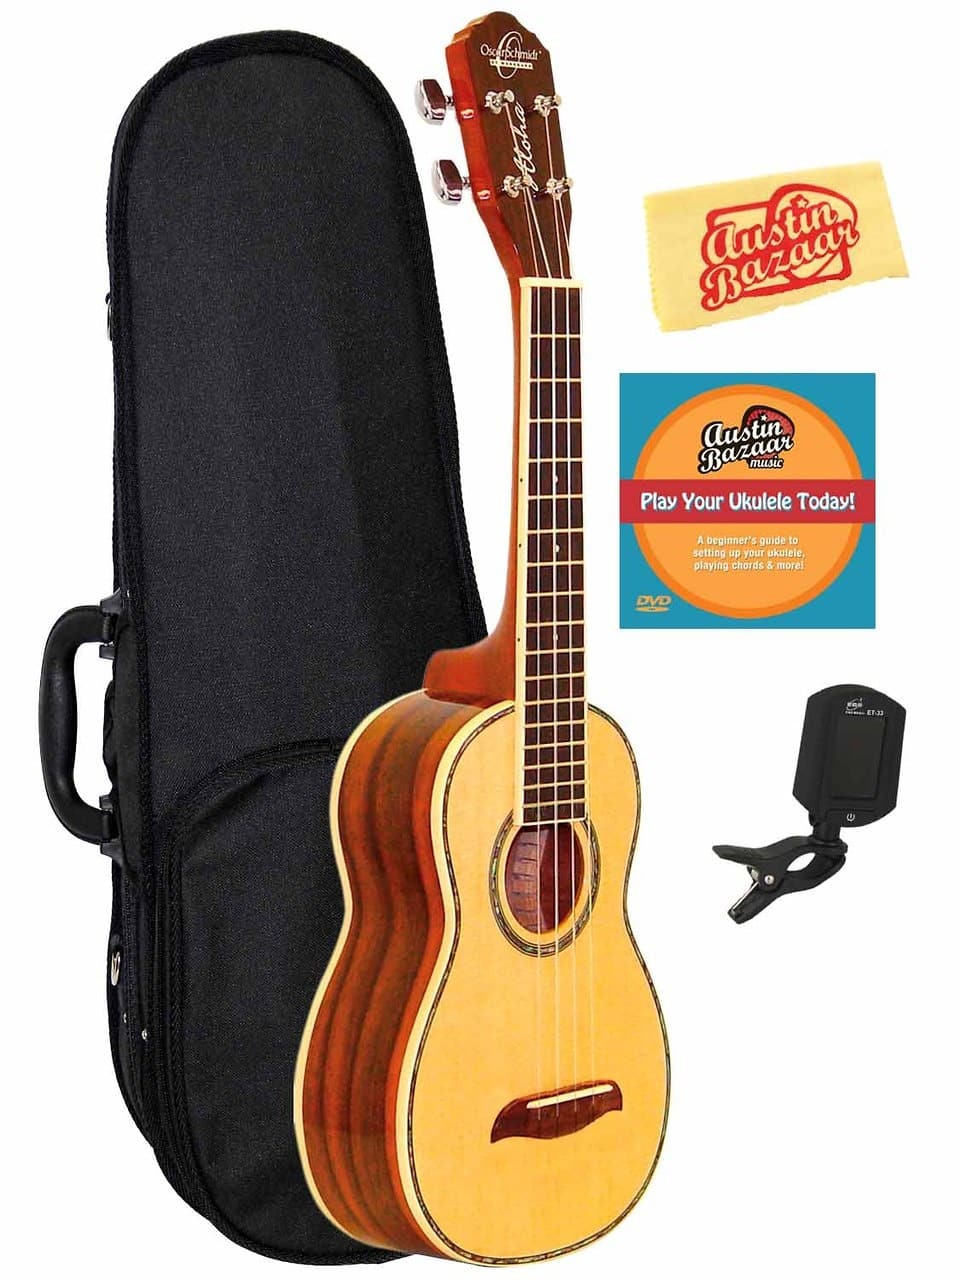 1556640 Oscar Schmidt Od312 12 String Dreadnought Acoustic Guitar W Case Natural Od312 Case in addition 1645577 Epiphone Wildkat Hollowbody Electric Guitar With Bigsby Wine Red further 1553238 Oscar Schmidt Aloha Tenor Ukulele Mahogany Ebony Ou2t Hd Padded Bag Tuner Ou2t Pro besides Oscar Schmidt Oe30ts Semi Hollowbody Electric Guitar Tobacco Sunburst moreover Oscar Schmidt Instruments. on oscar schmidt hollow body